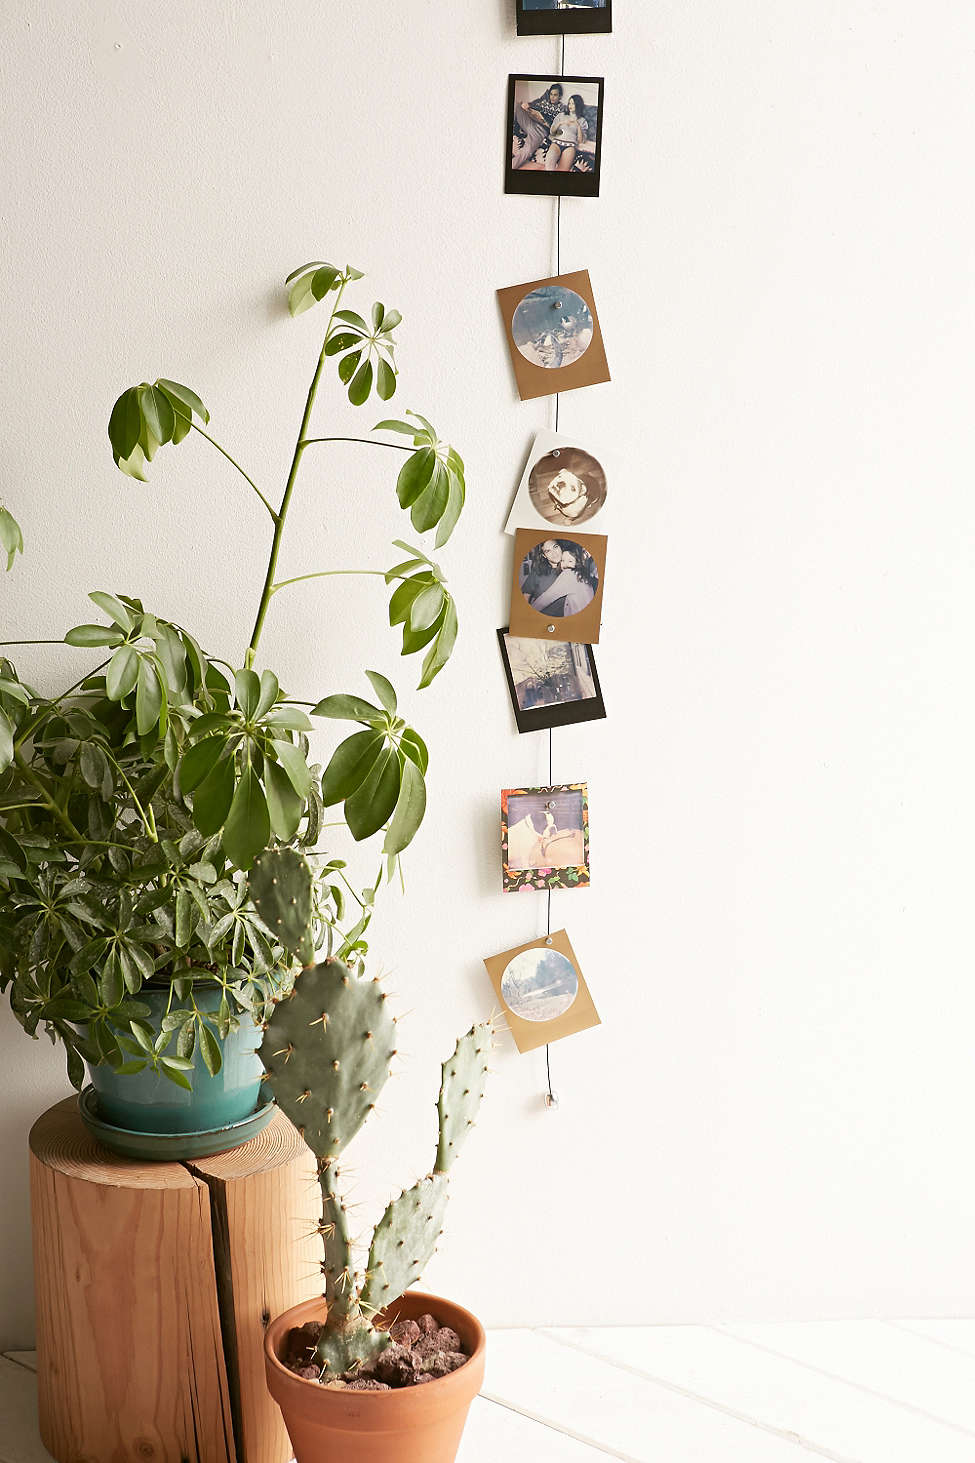 Magnetic photo holder from Urban Outfitters